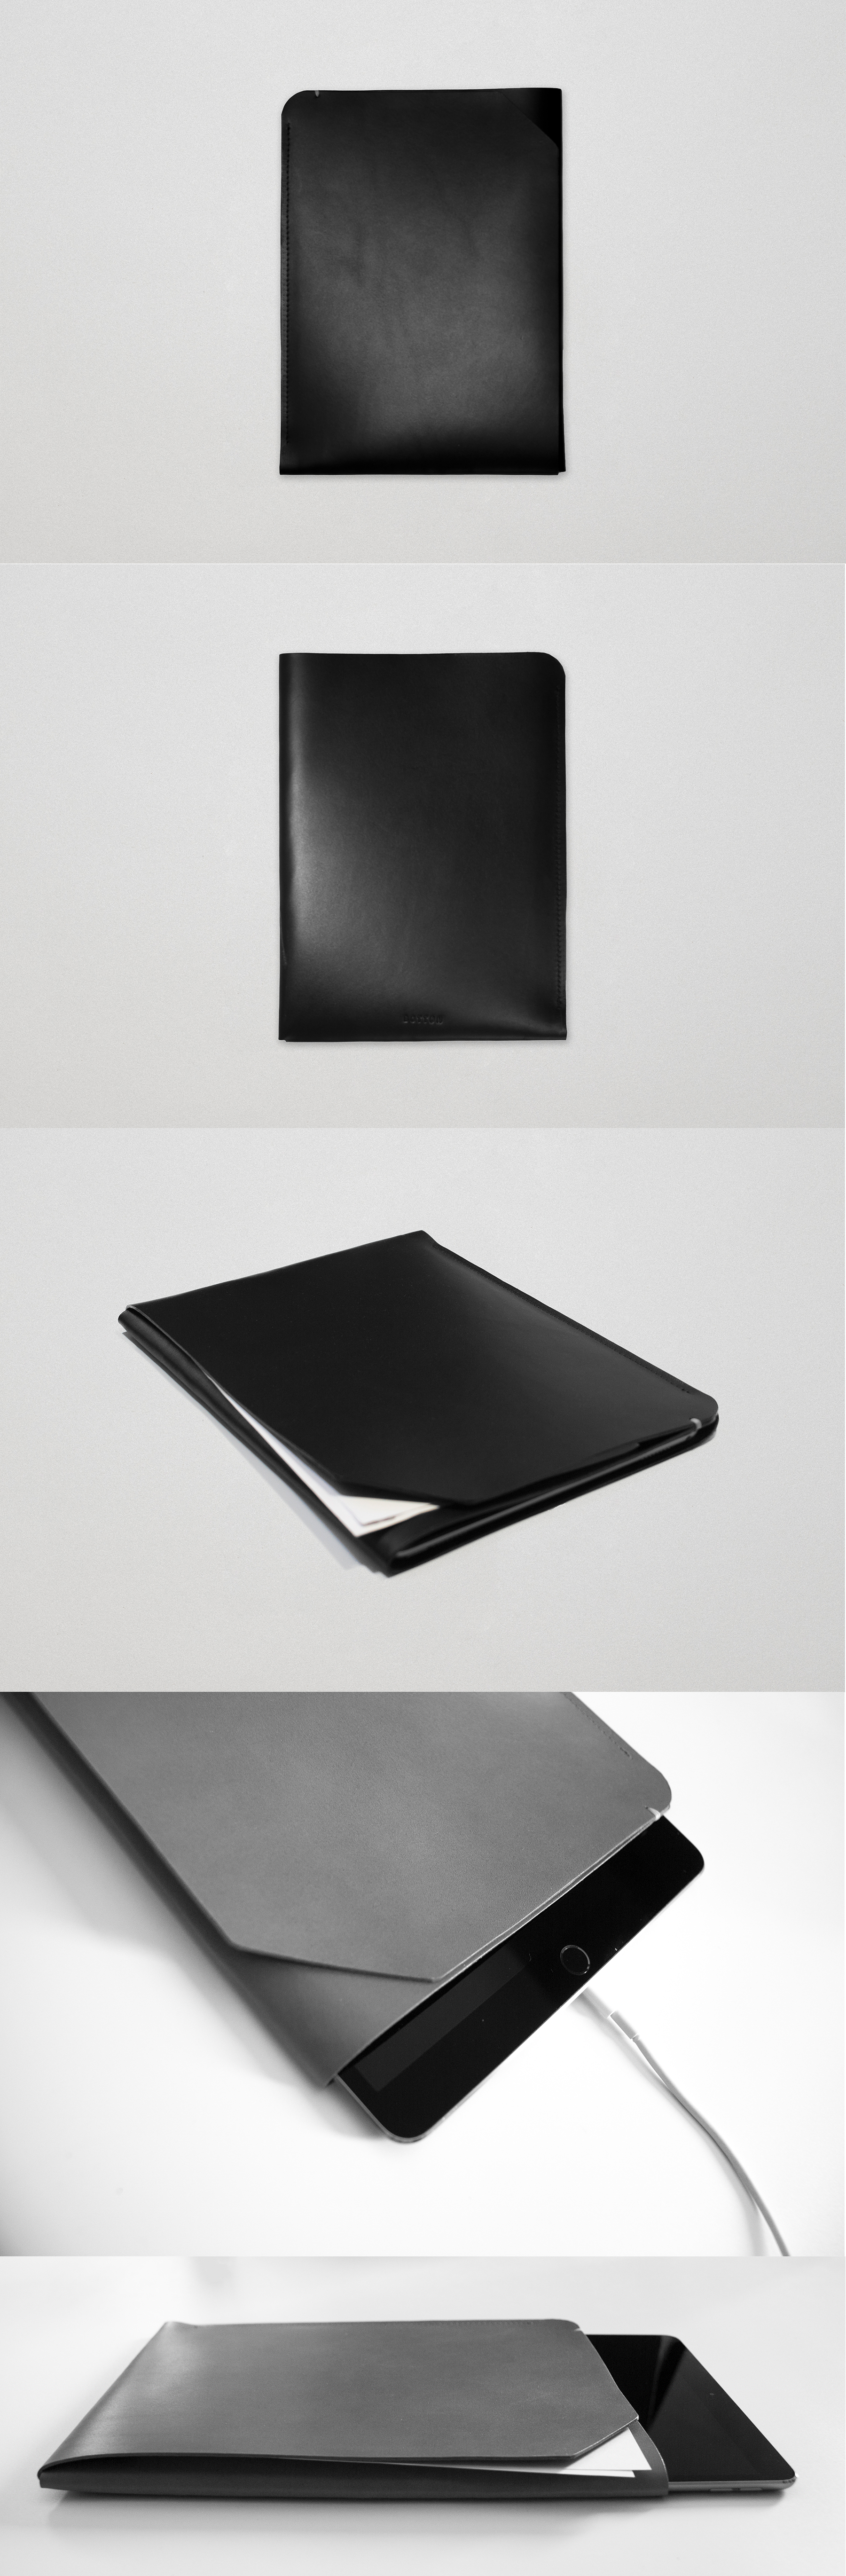 Main pocket for iPad and secondary front pocket for